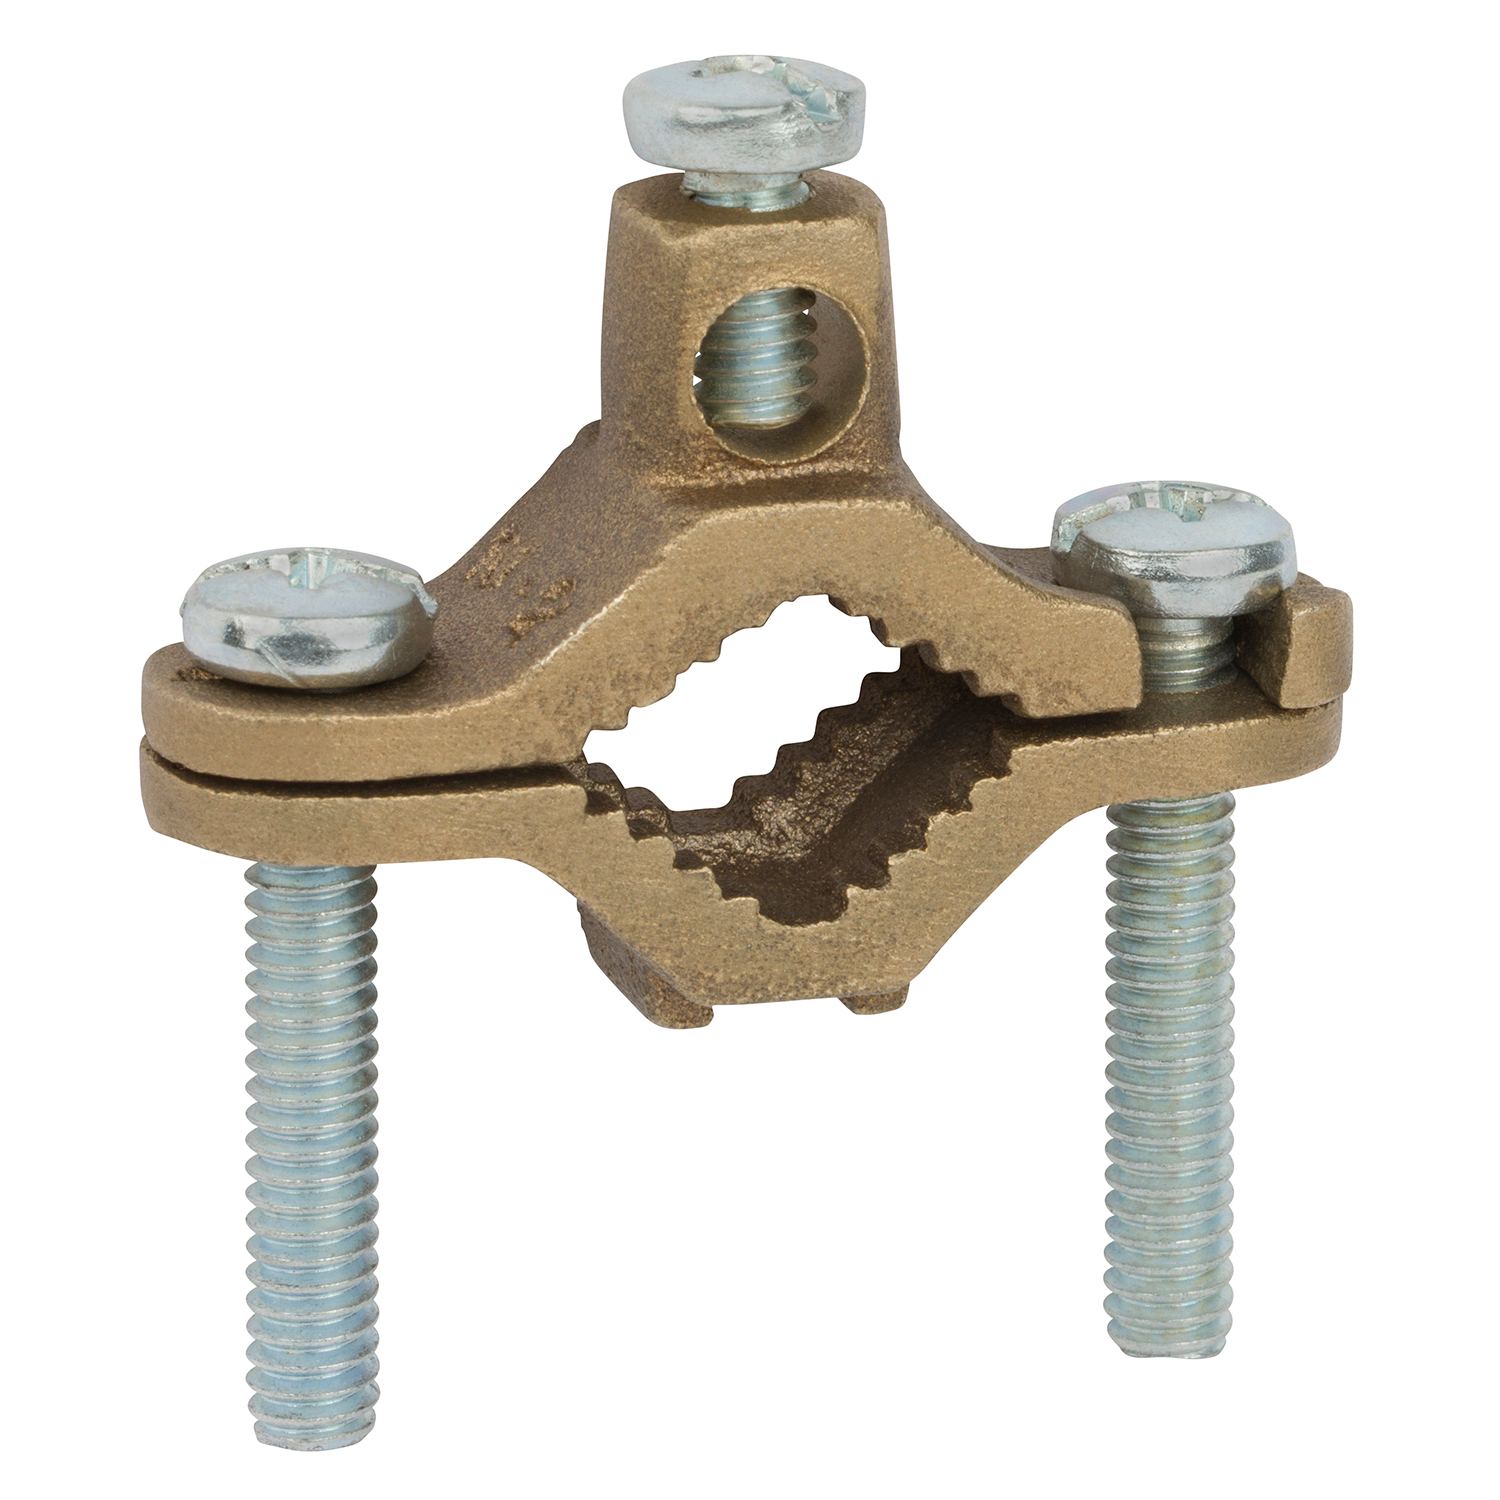 Ground rods united electric blaj cast bronze ground clamp for wire range 10 2 water pipe size 1 keyboard keysfo Images